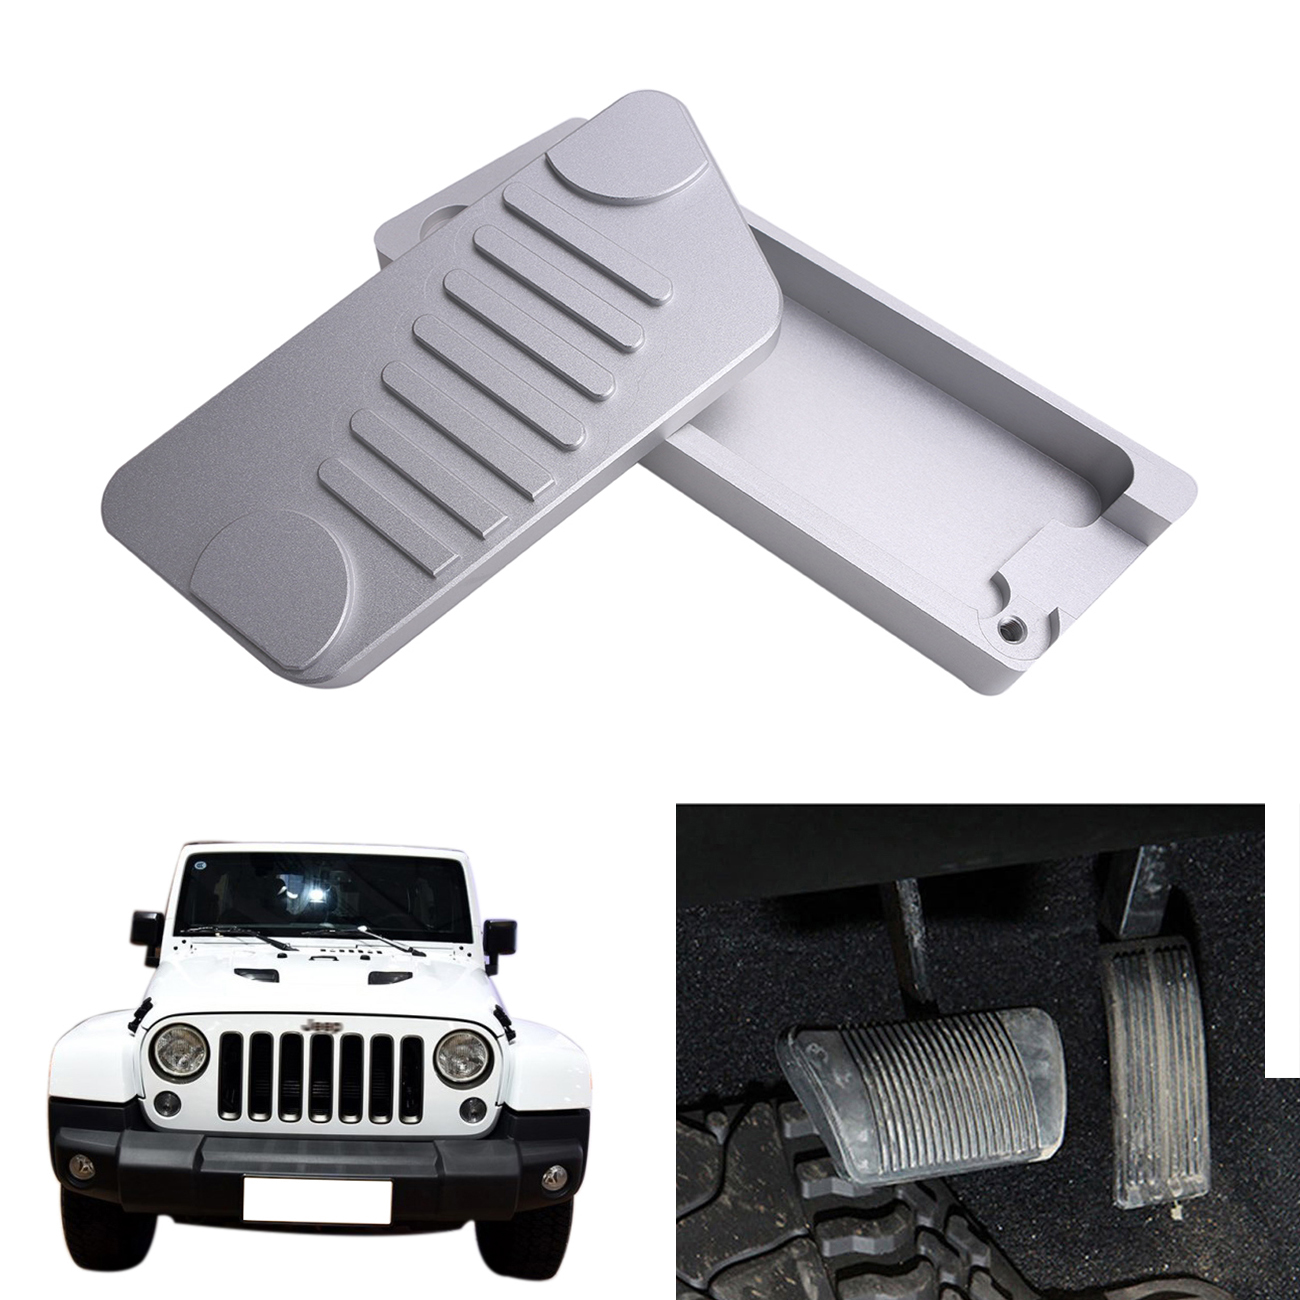 small resolution of silver aluminum alloy accelerator gas brake pedal kit for jeep wrangler jk rubicon sahara sport 2009 2016 left hand drive ce039 in pedals from automobiles